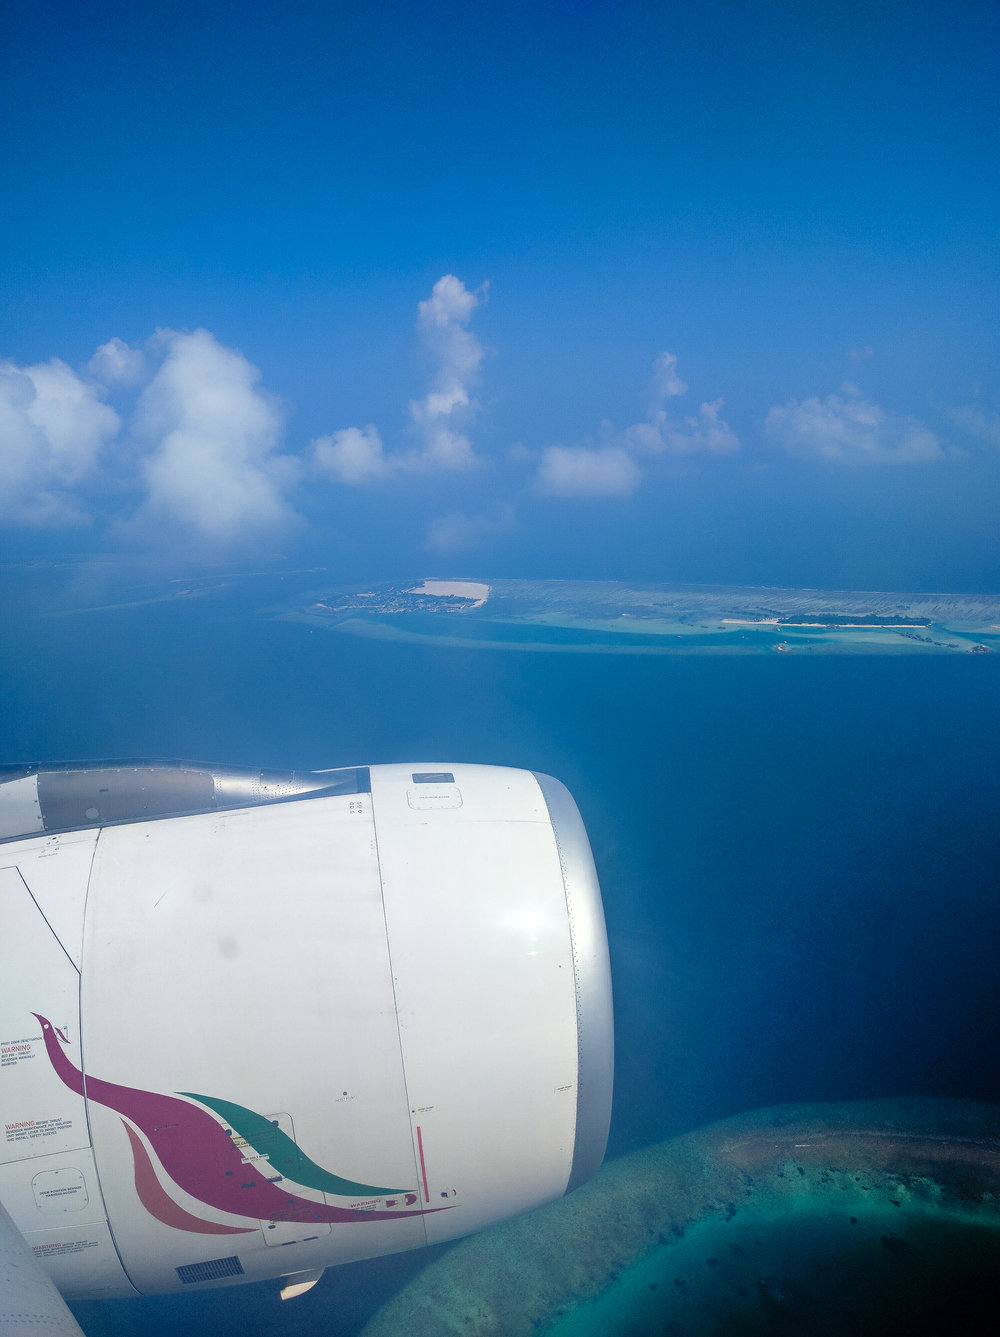 A pic from our decent into the Maldives. All of the islands were unique shapes and beautiful. Taken in 2016